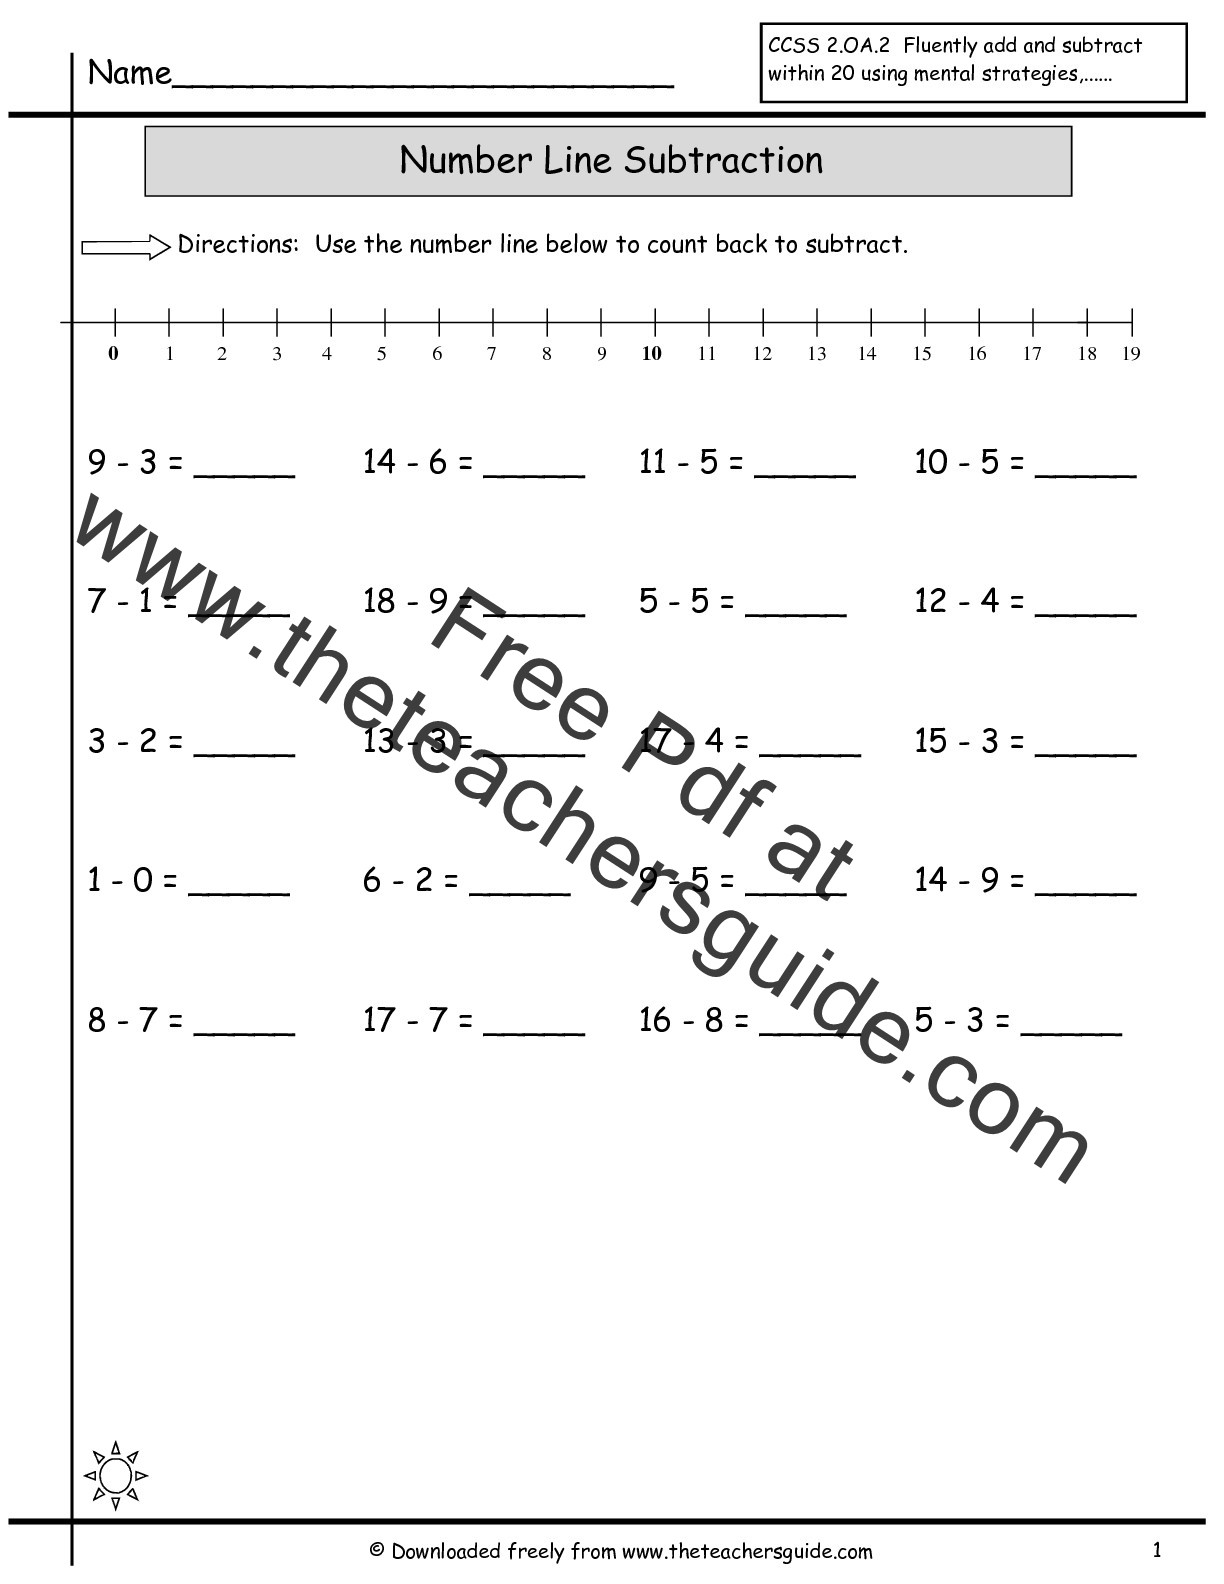 Subtraction with Number Line Worksheets